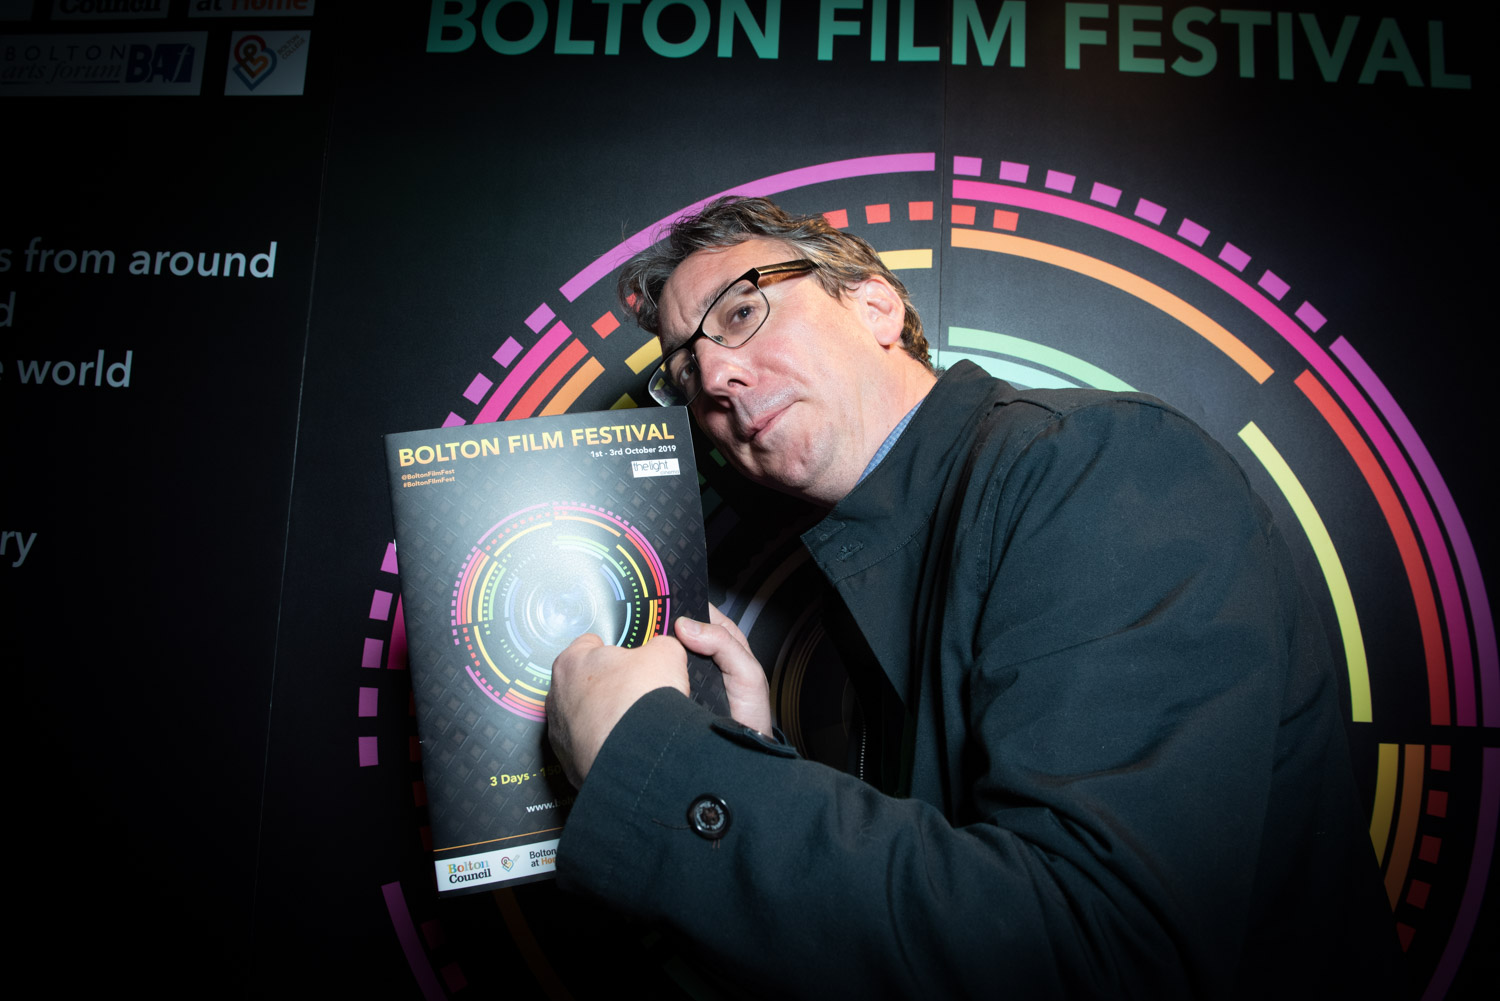 Keith Farrell film Director showing off copy of the festival programme